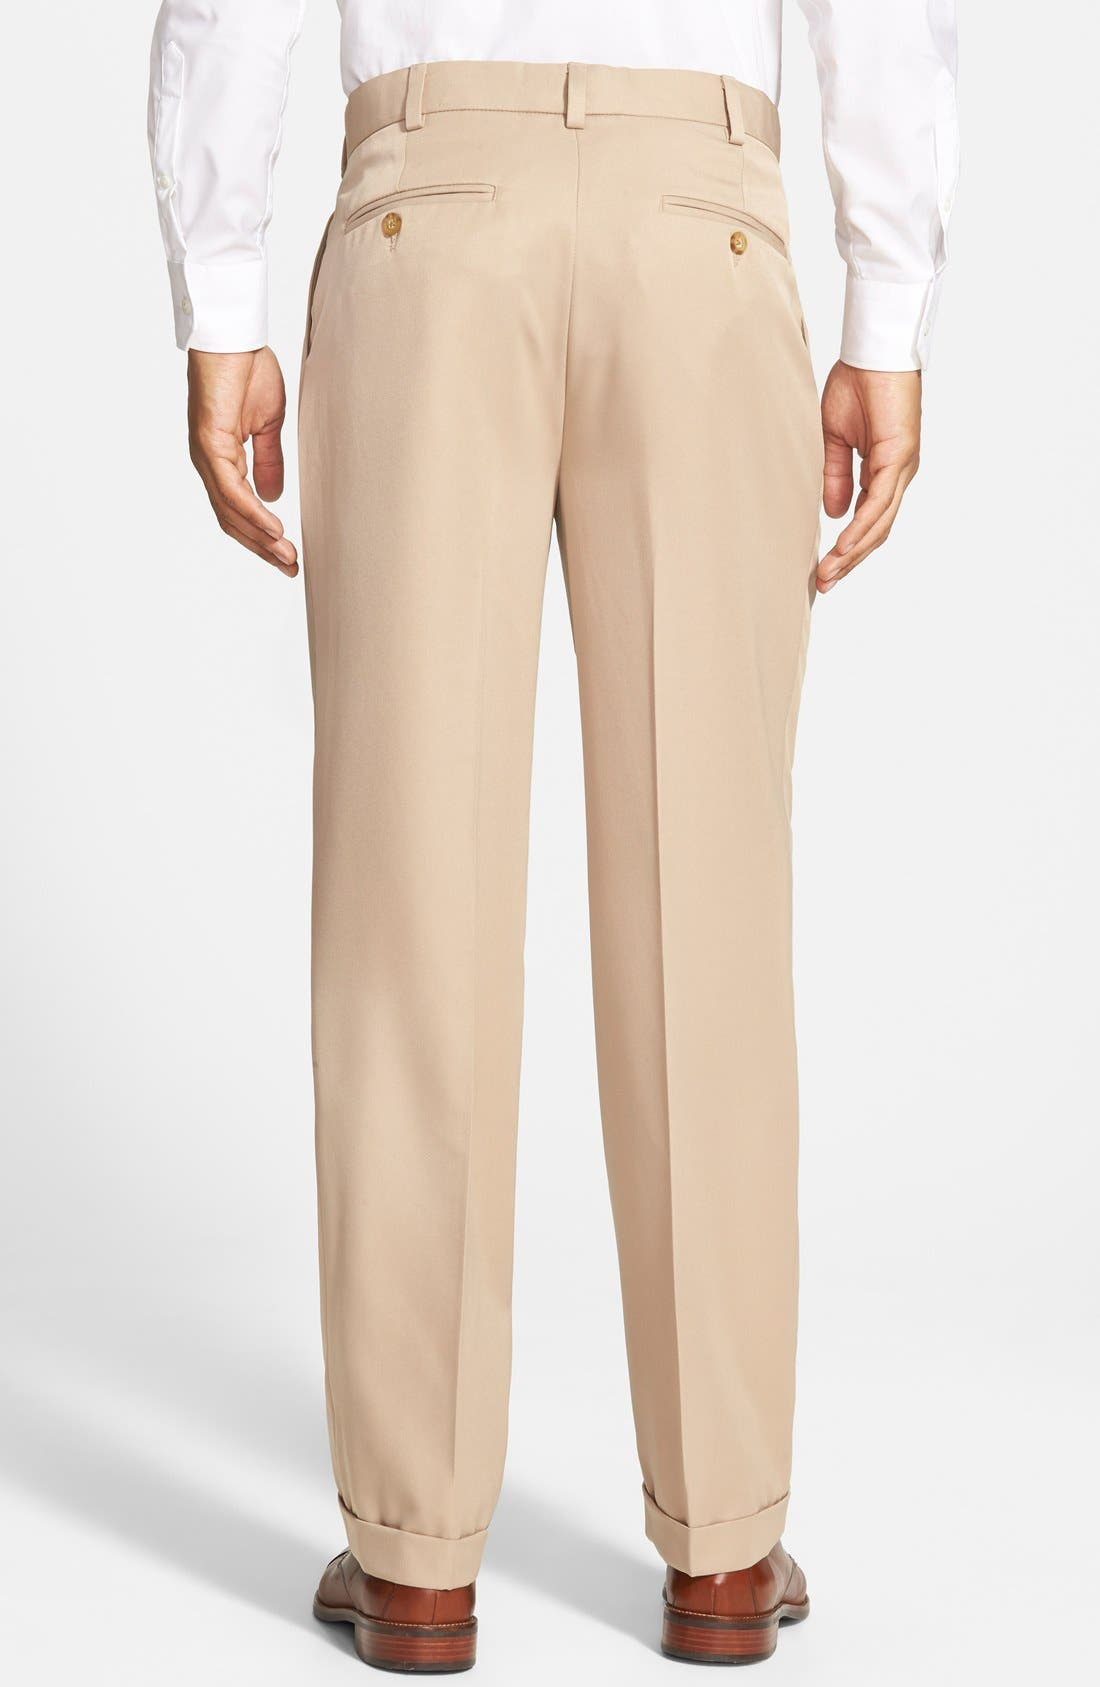 Self Sizer Waist Pleated Trousers,                             Alternate thumbnail 3, color,                             Tan